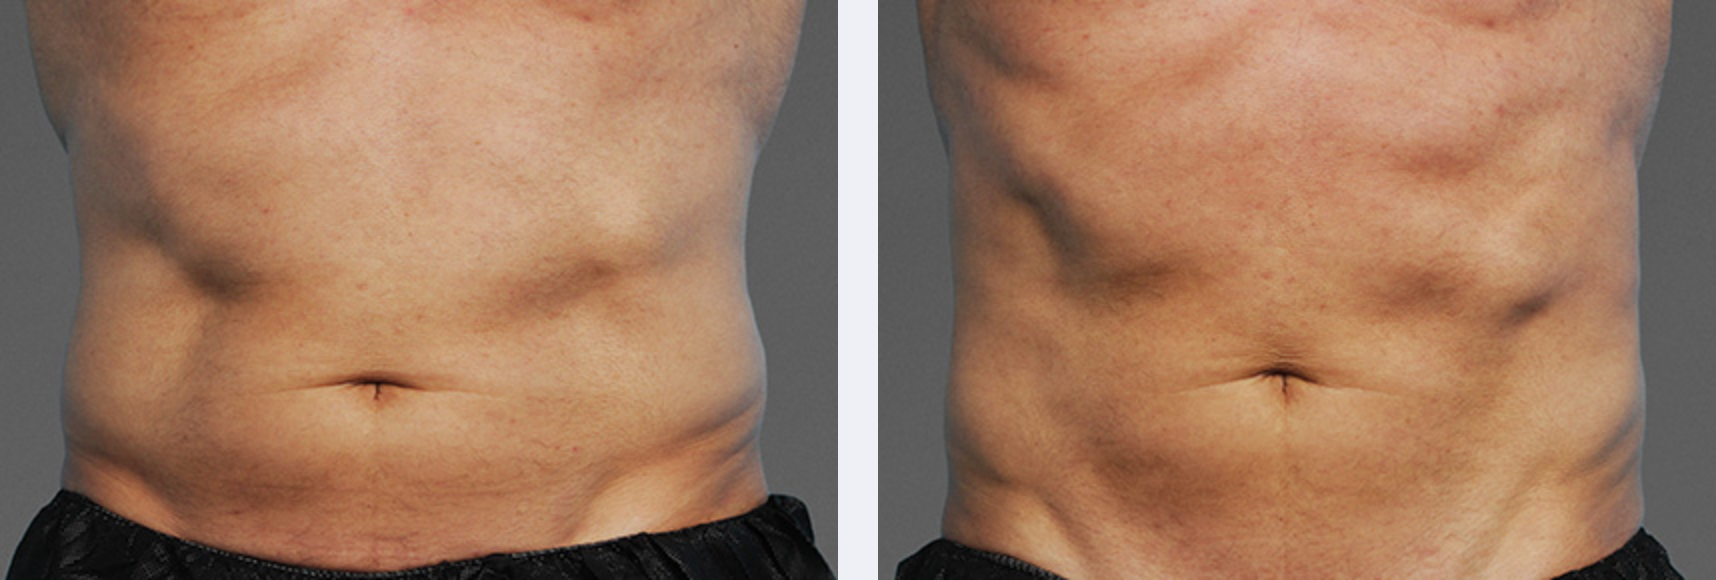 Image showing abs that look more in shape after a cooltone workout for body contouring, New York City, NY